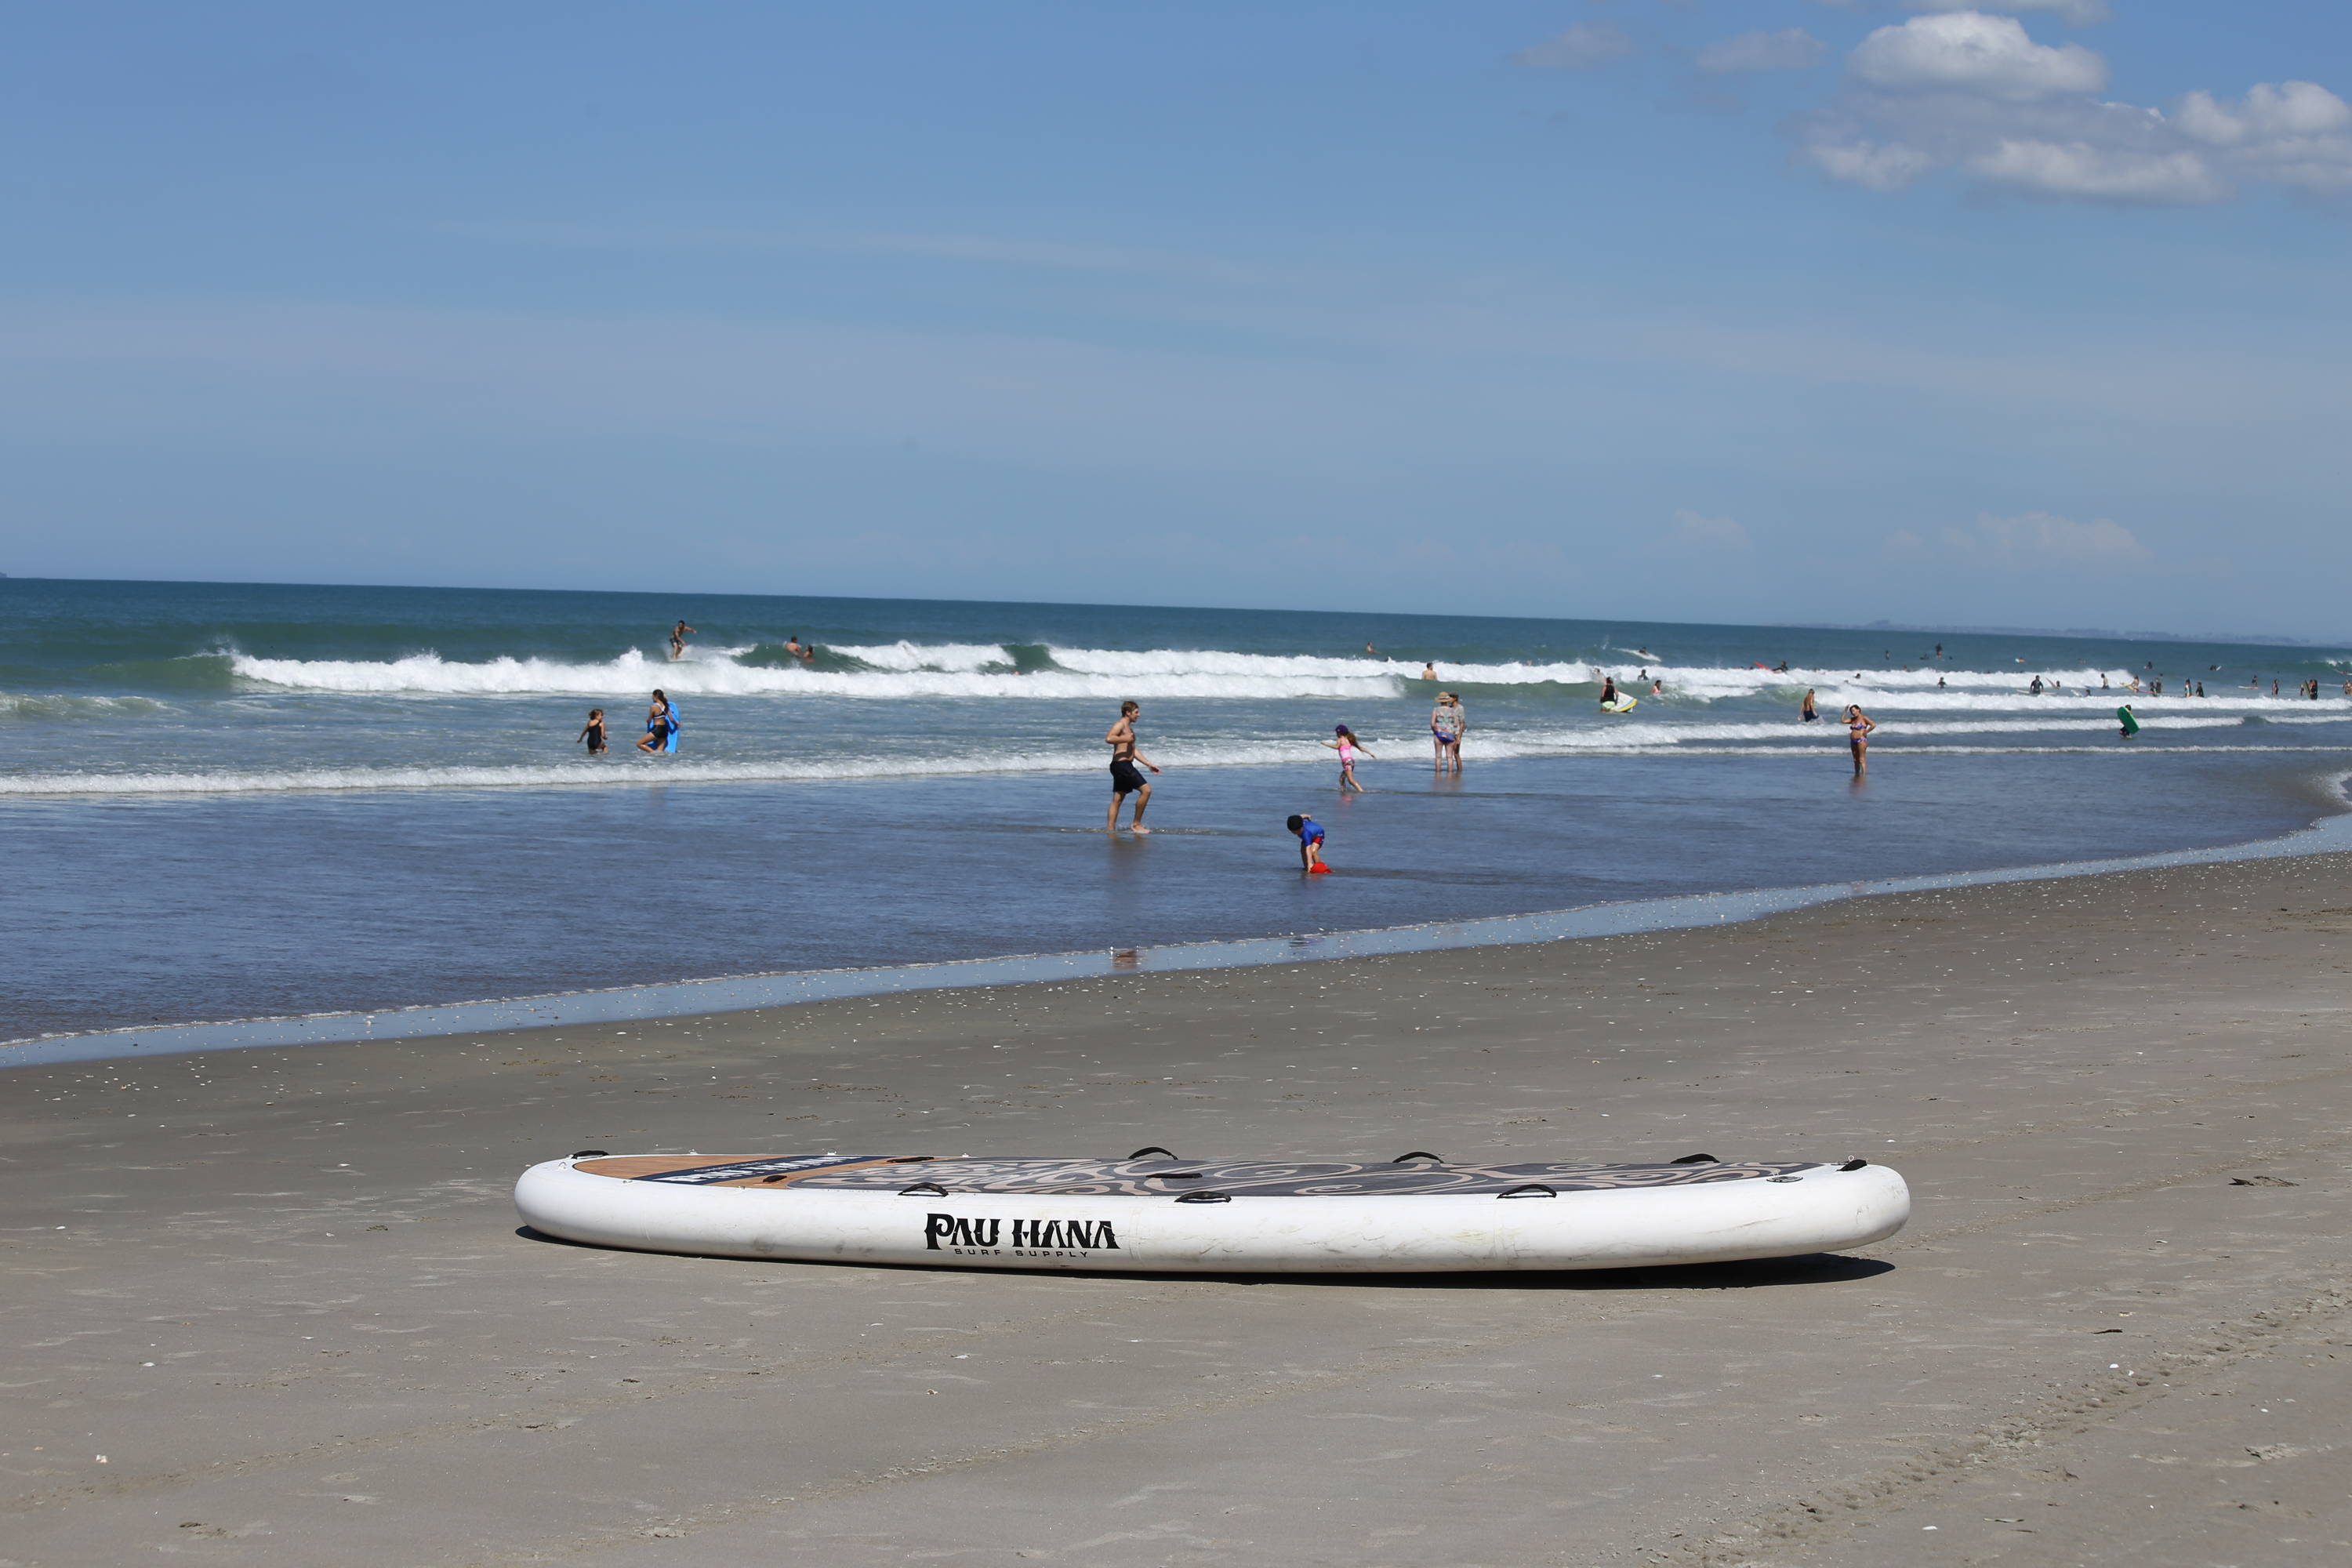 inflatable giant sup on the beach